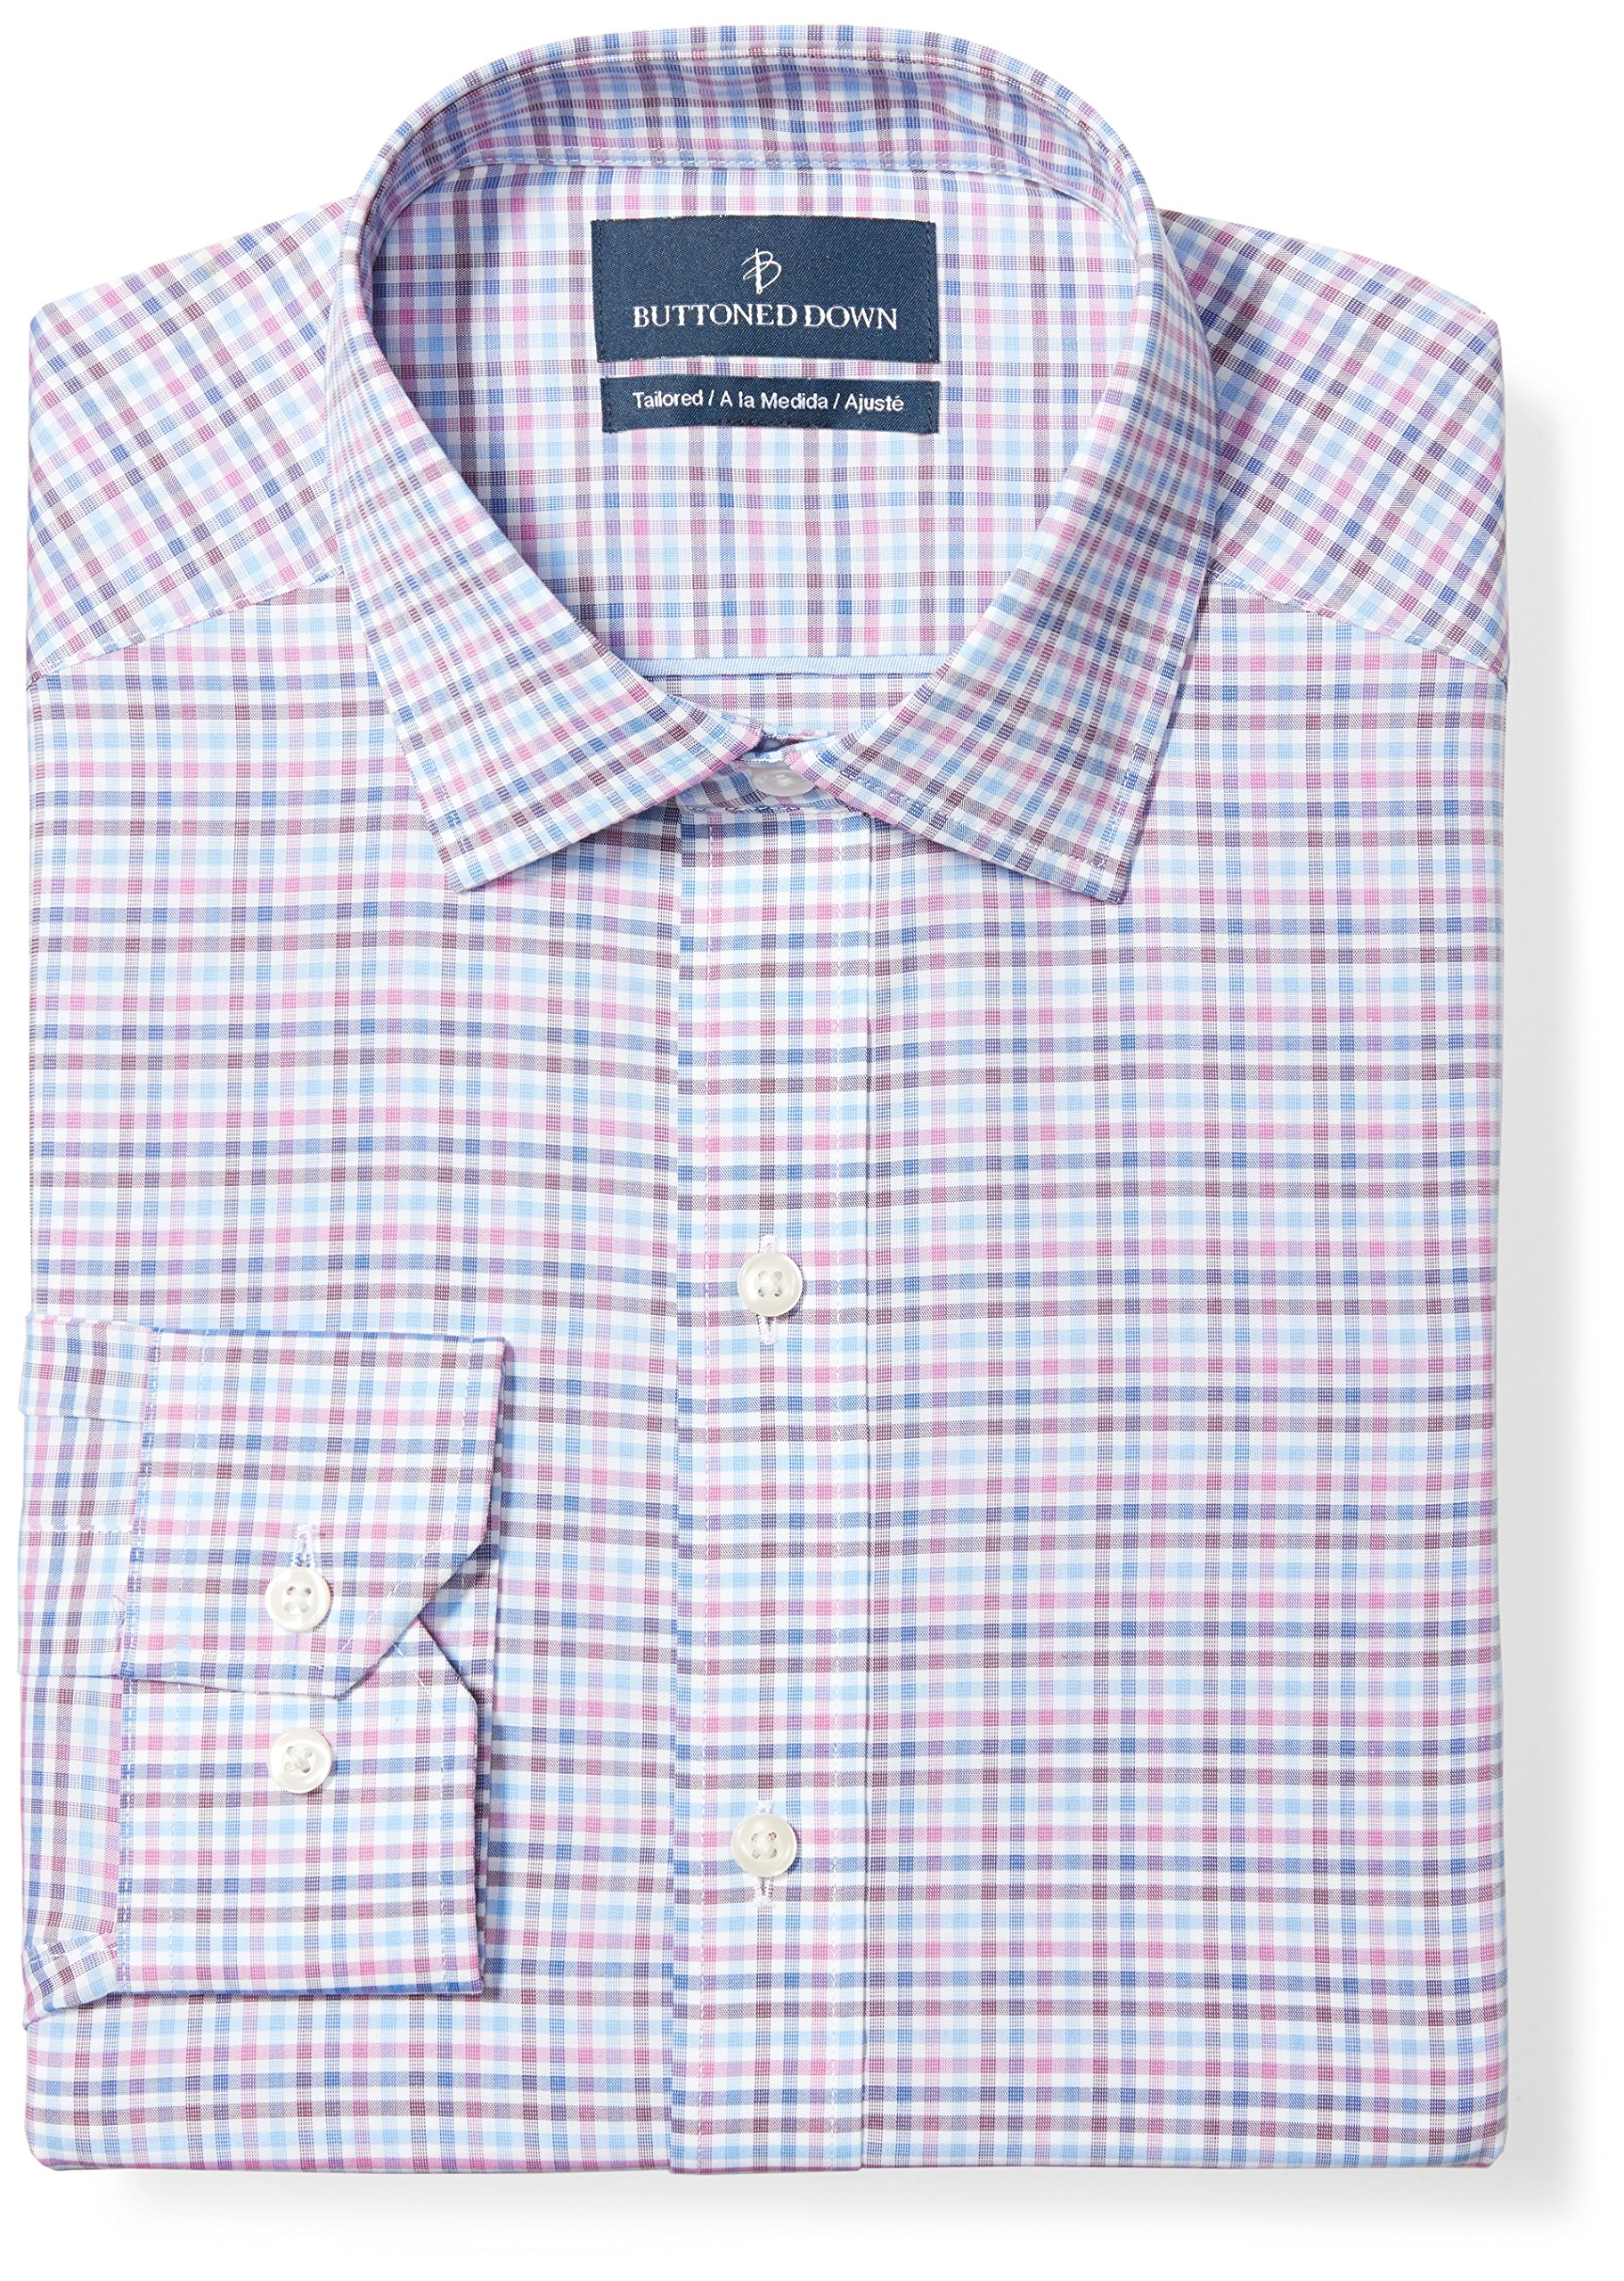 Buttoned Down Men's Tailored Fit Spread-Collar Pattern Non-Iron Dress Shirt, Berry/Blue/Navy Check, 18'' Neck 35'' Sleeve (Big and Tall)